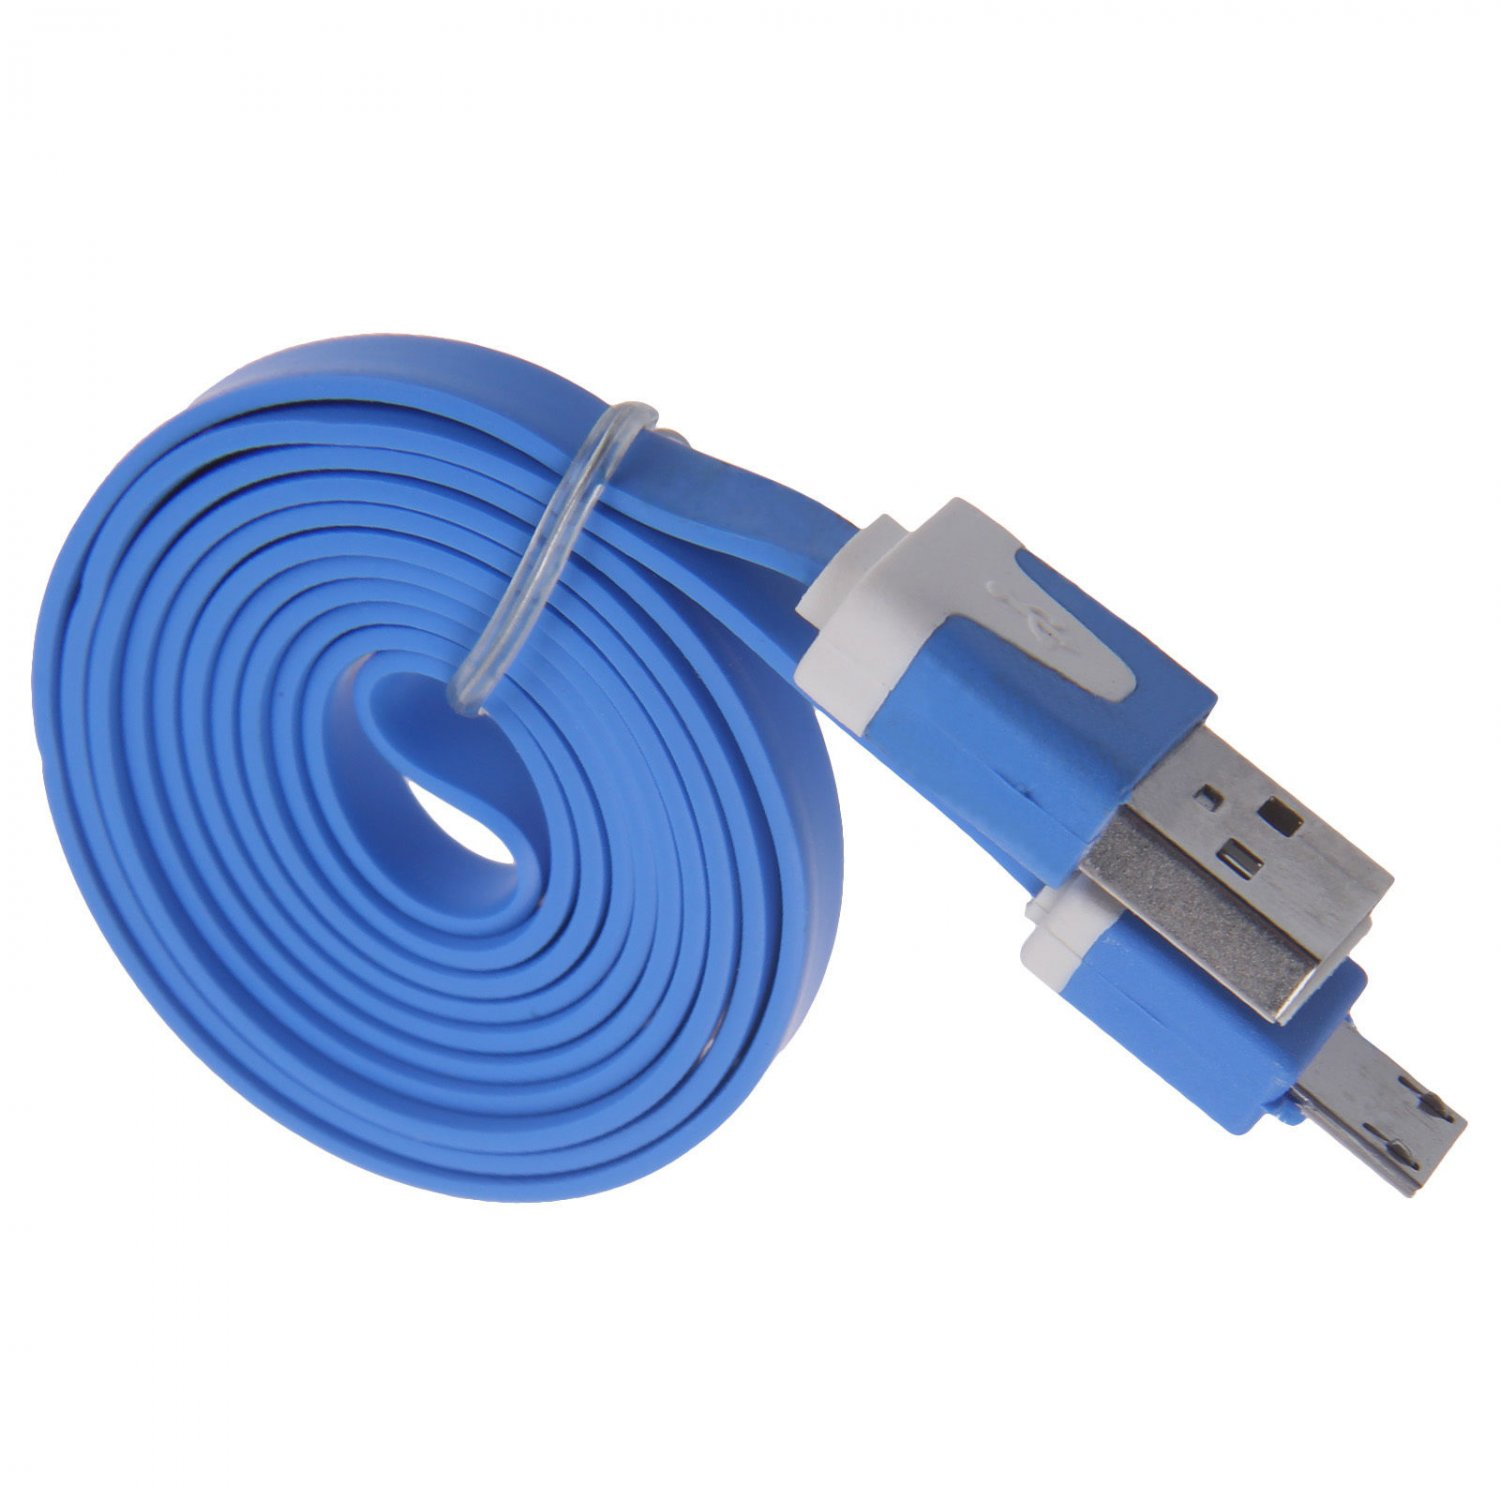 2M Blue Flat Noodle Micro USB Charger Sync Data Cable for Android Phones